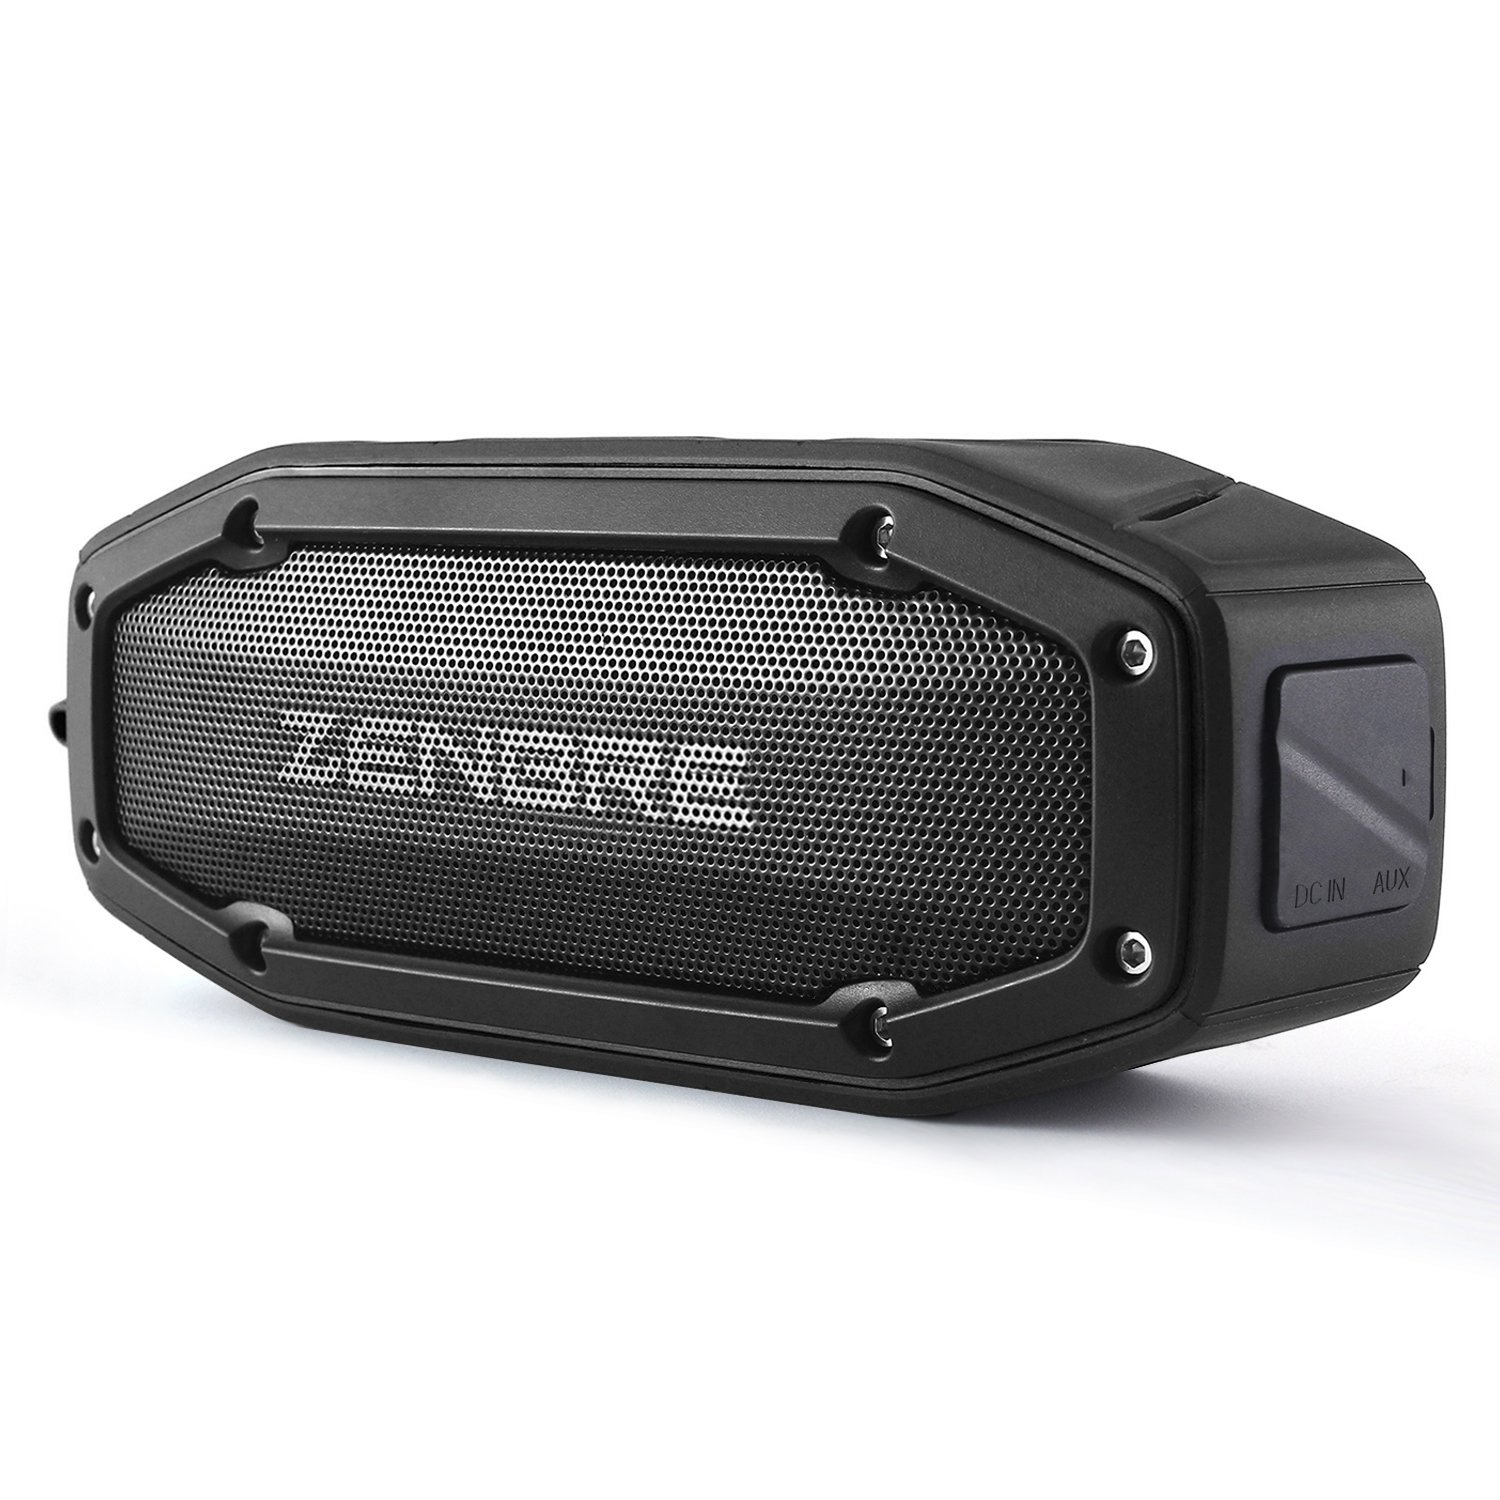 ZENBRE Bluetooth Speakers, D6 Bluetooth 4.1 Waterproof IPX6 with 18H Play-Time, 10W Dual Driver with Bass Resonator, Handsfree Calling, Shockproof Portable Speaker(Black)